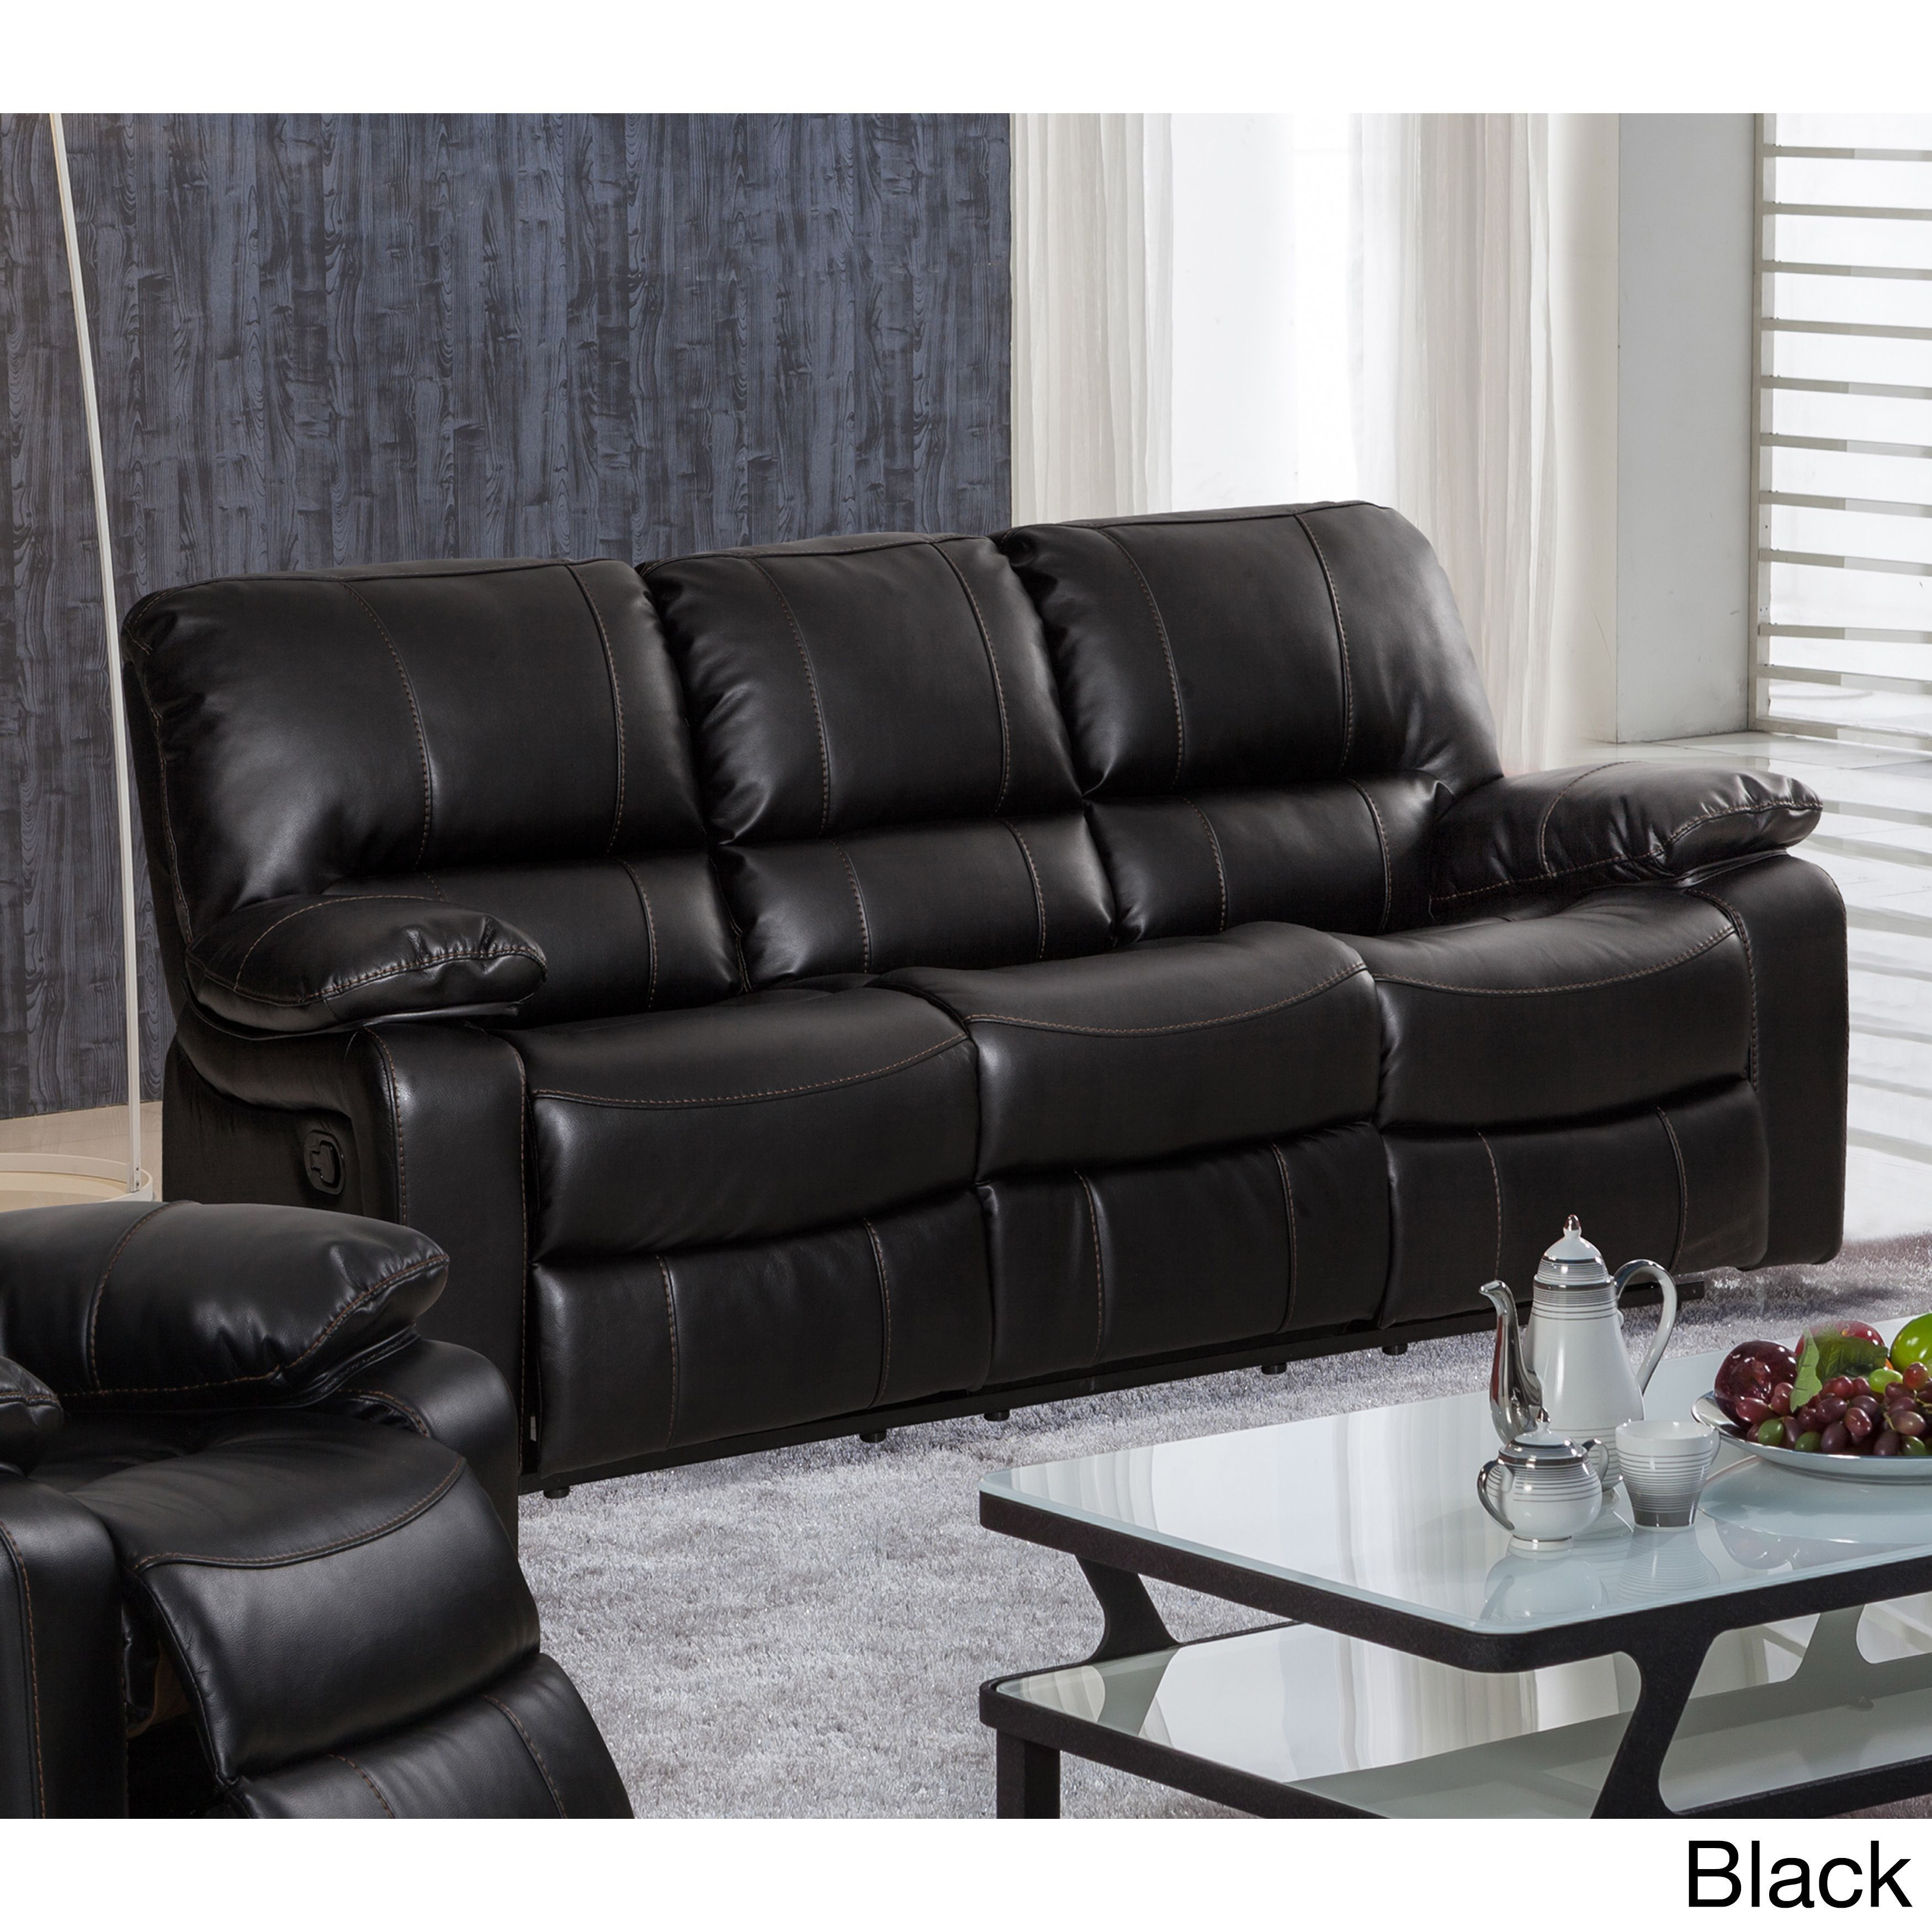 Samantha leather gel living room reclining sofa black brown synthetic leather